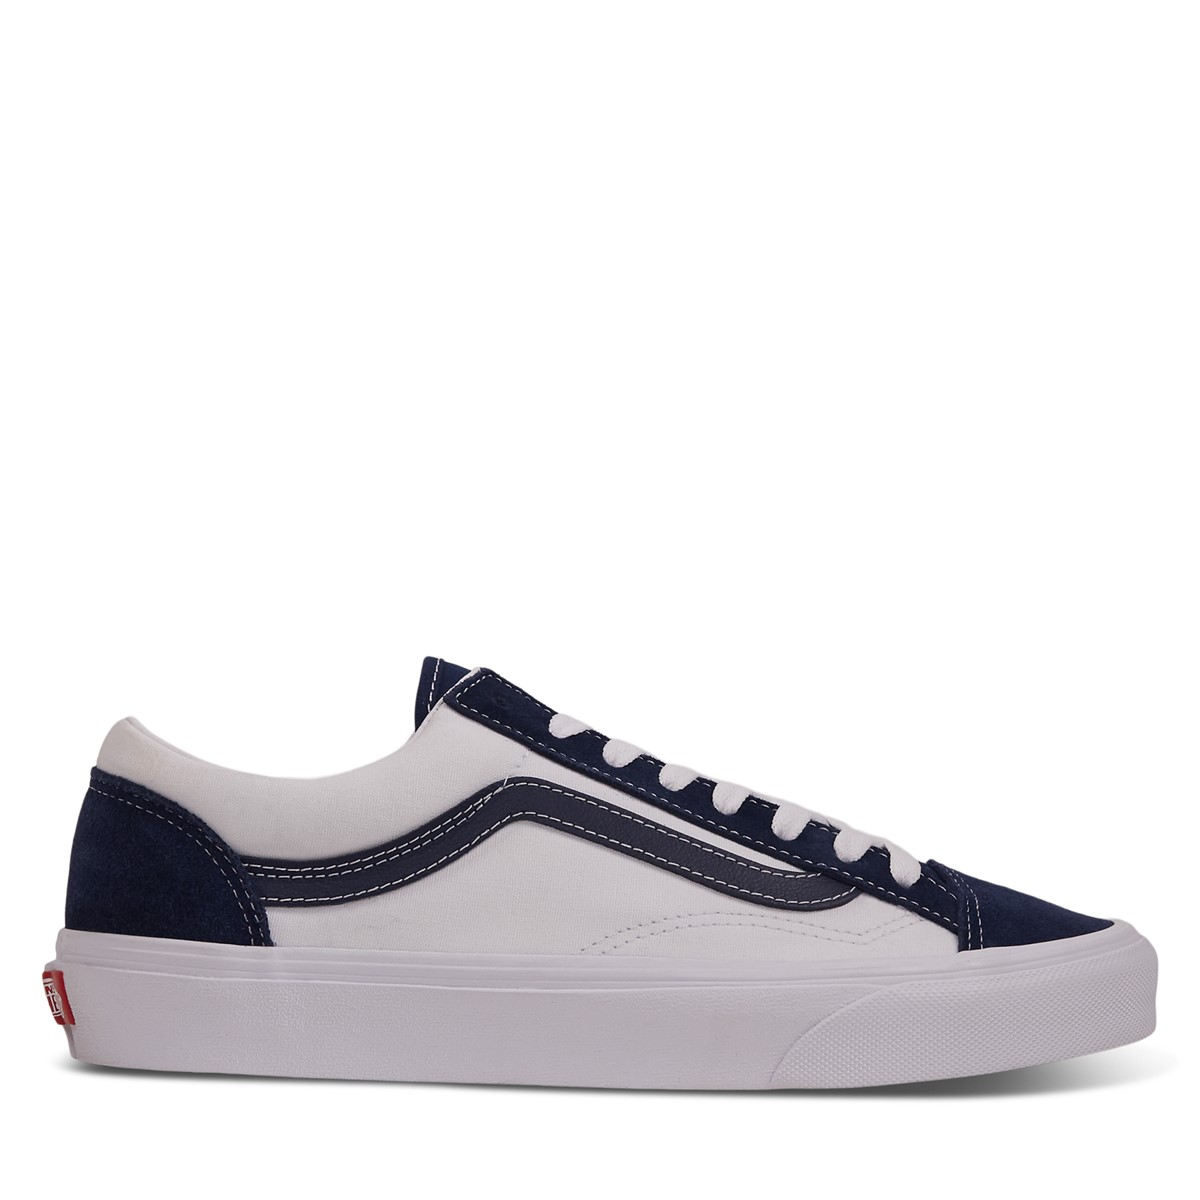 Classic Sport Style 36 Sneakers in White/Blue